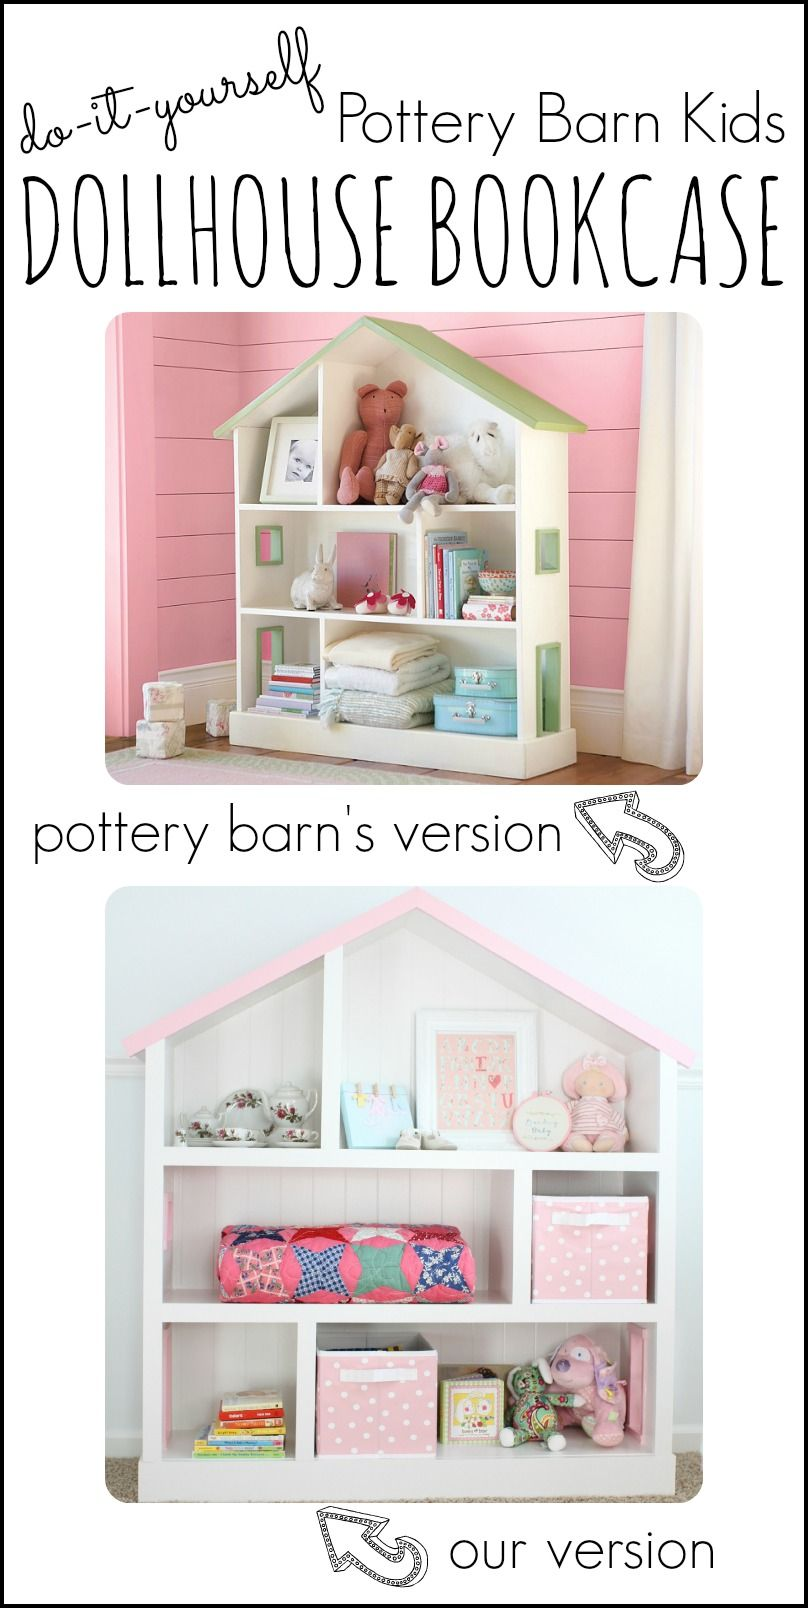 wall heart leaning the best on pinterest bookshelf i pottery diy renovation bookcase look shelf desire white barn regarding ana inside projects plan ladder images